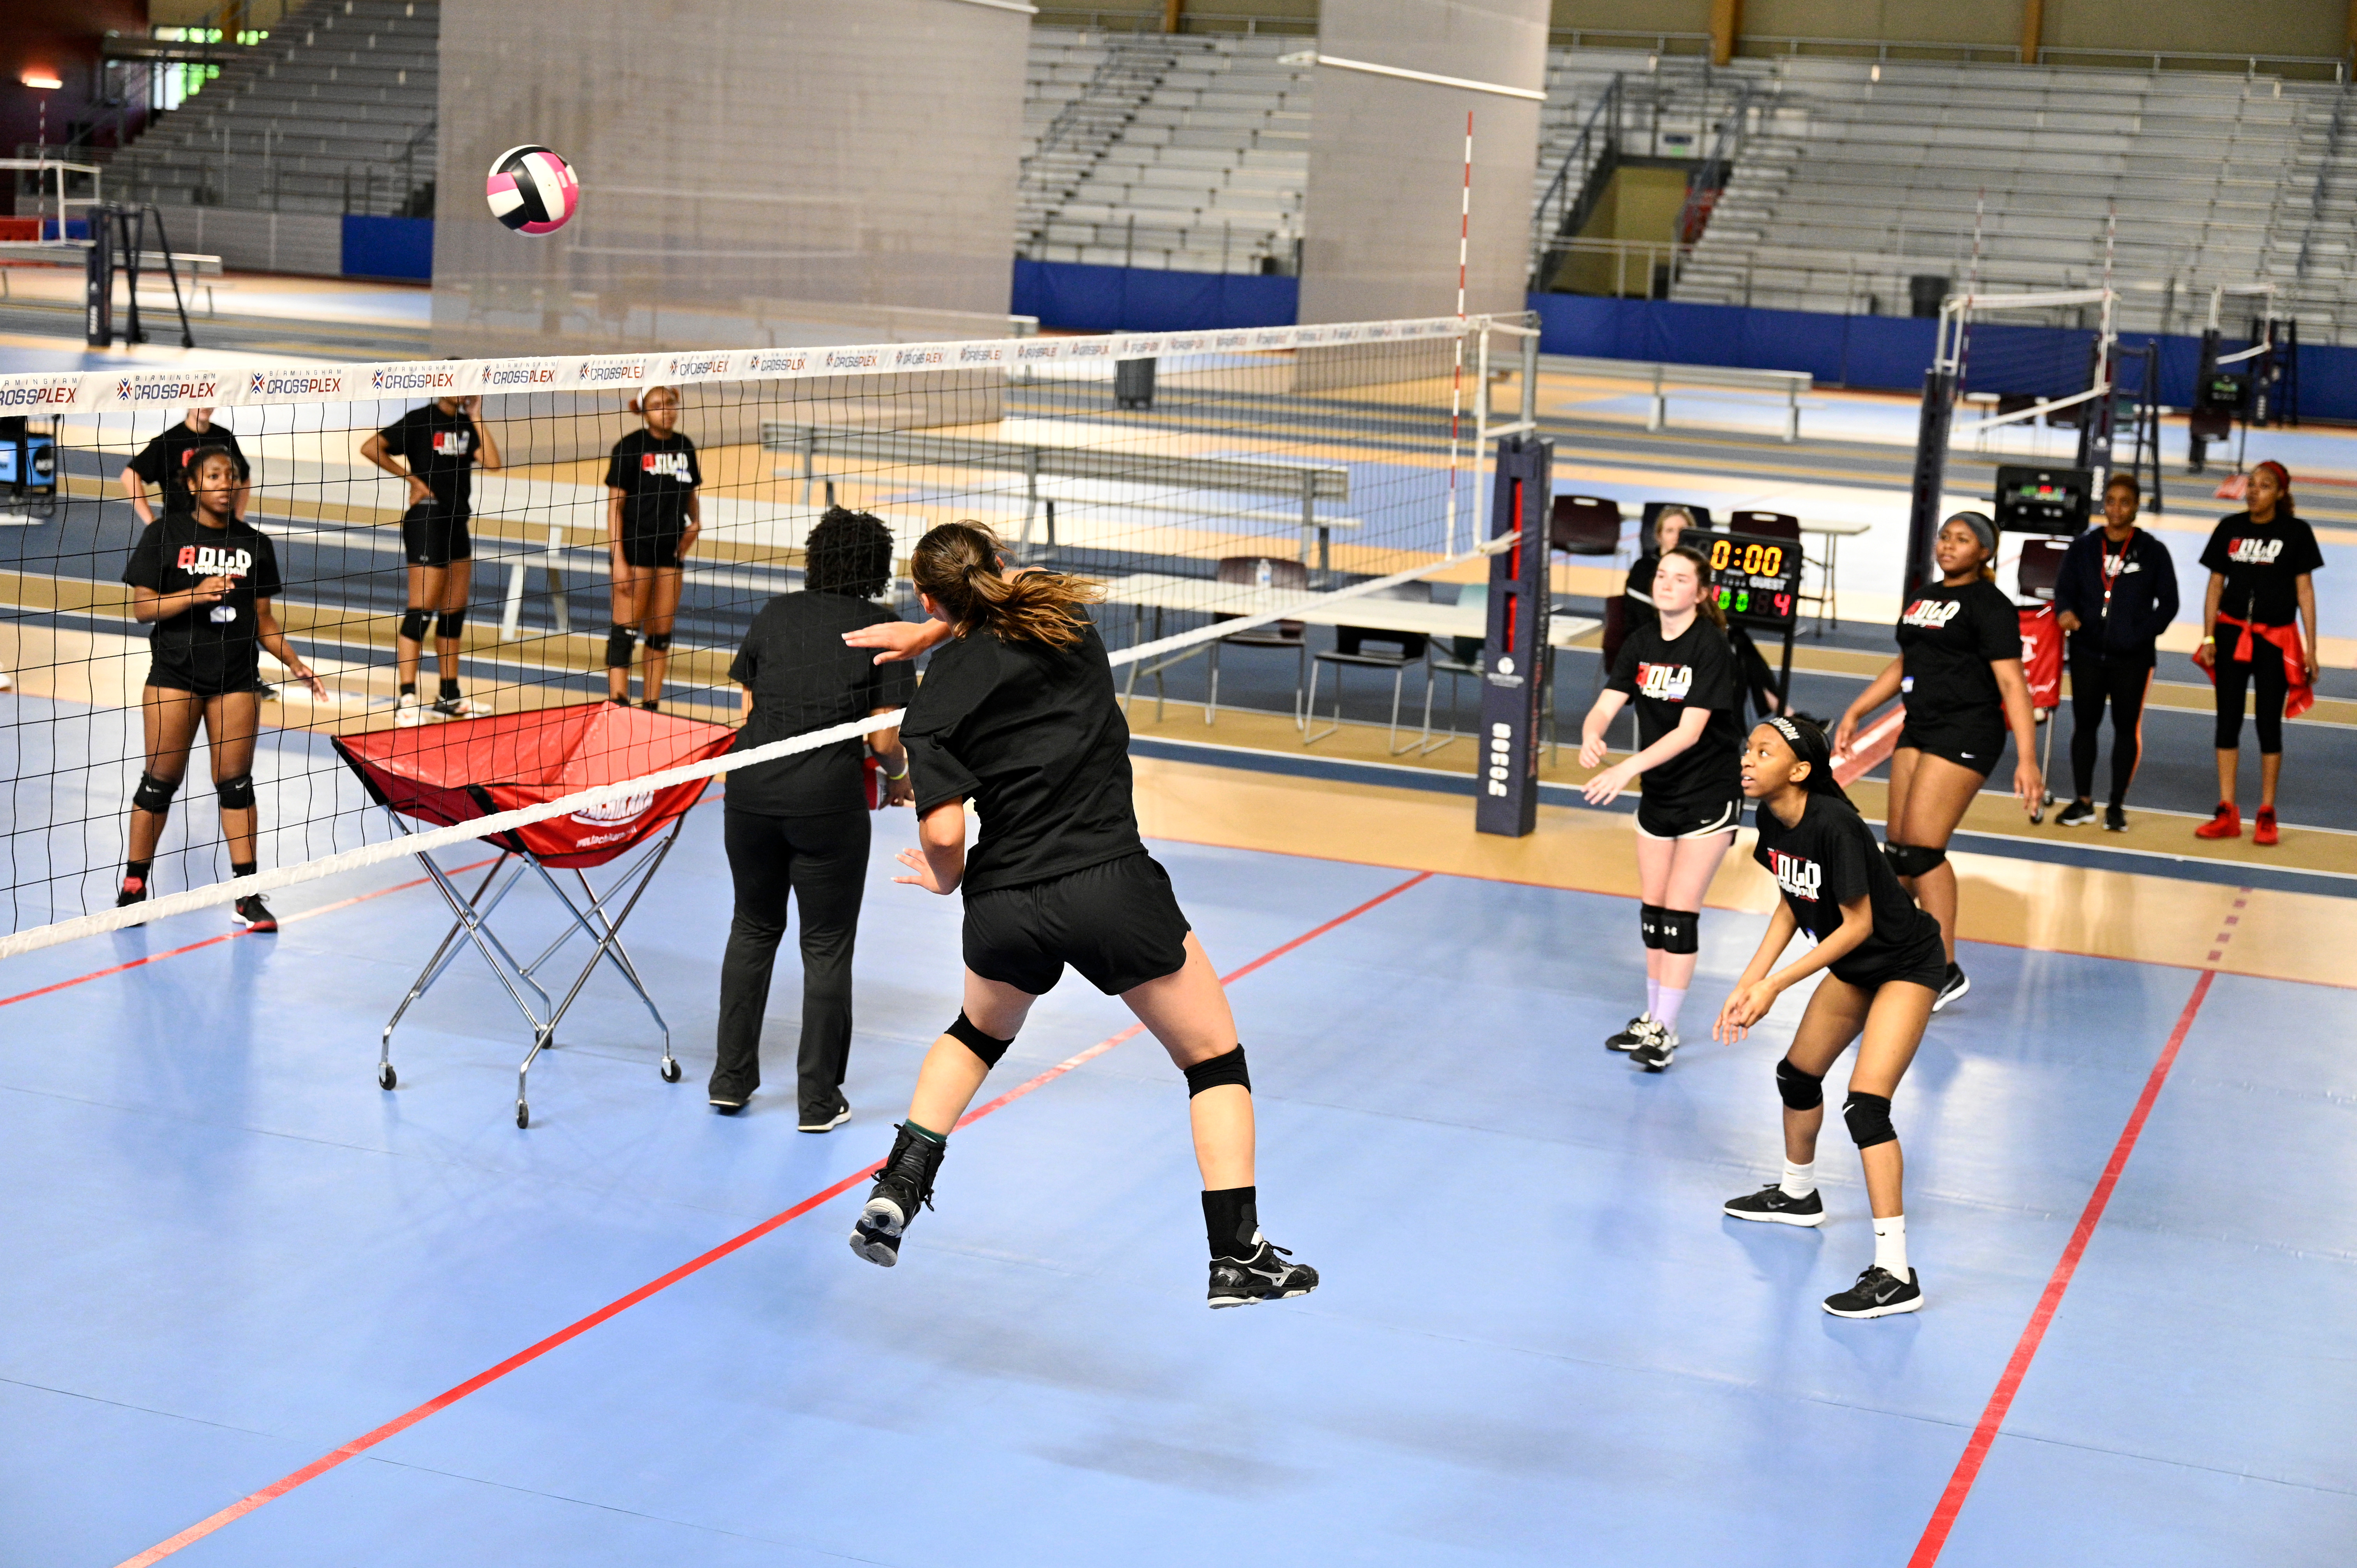 Try-Outs 16's-18's Oct. 23rd 2:00 p.m.!